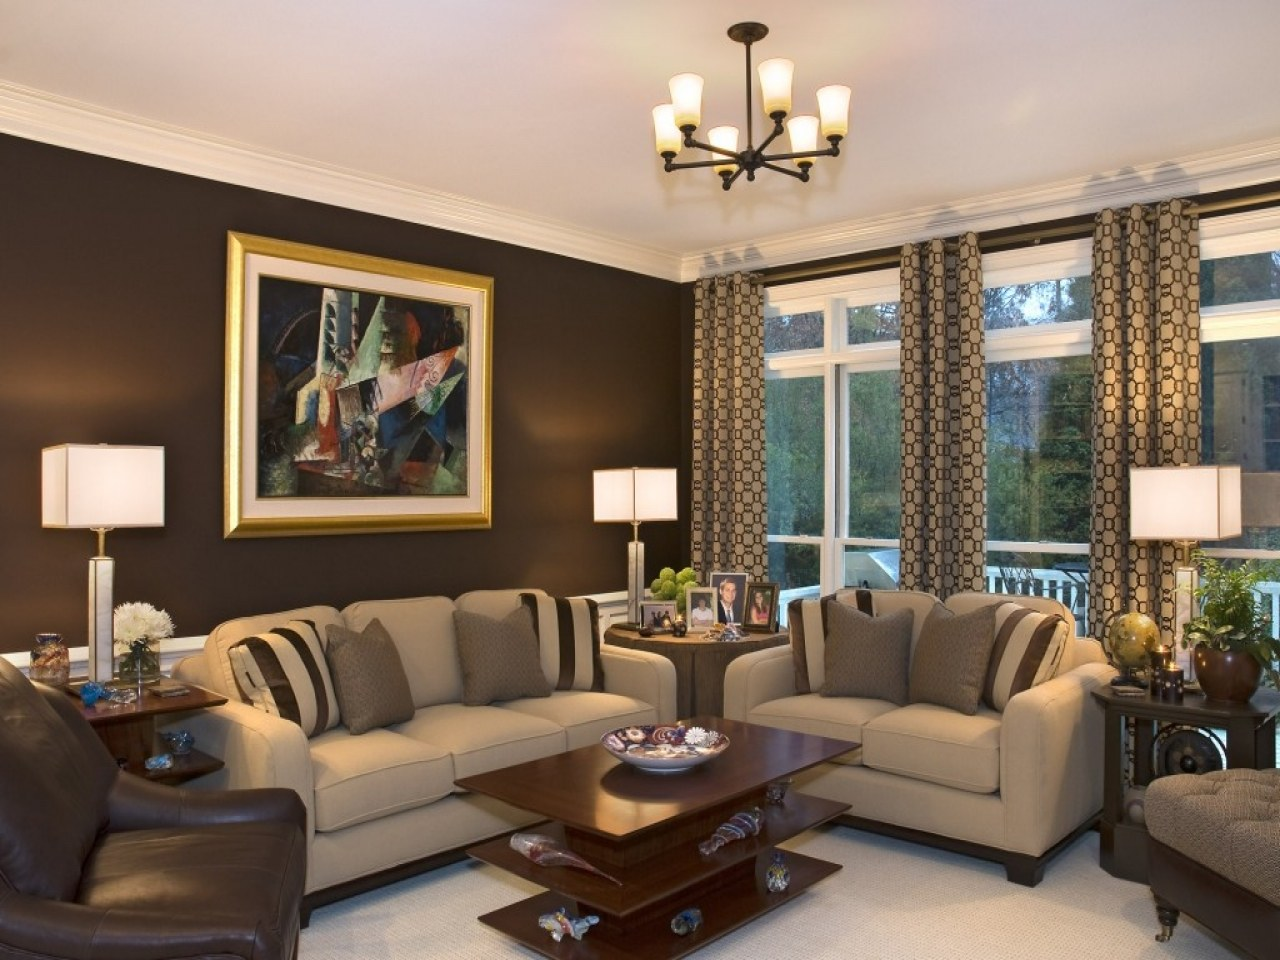 White ceiling and brown walls for classic interior